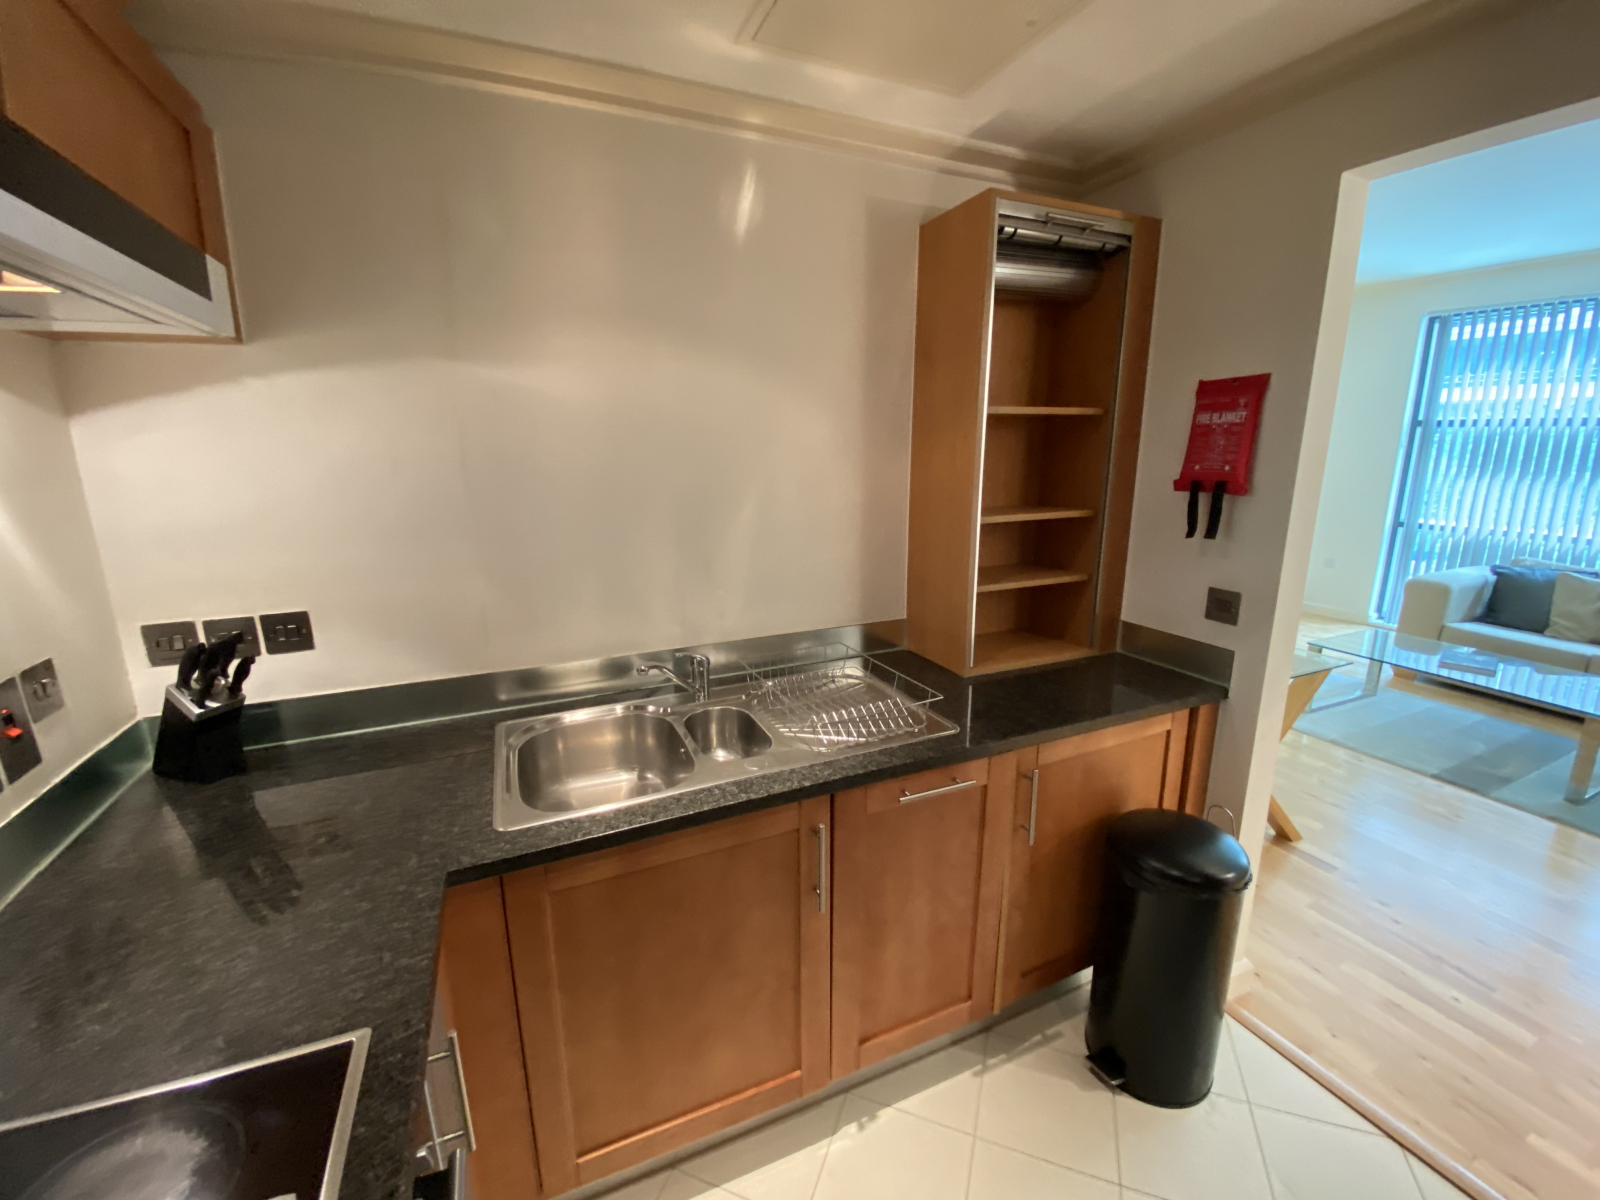 2 Bedroom apartment in Canary Wharf, E14